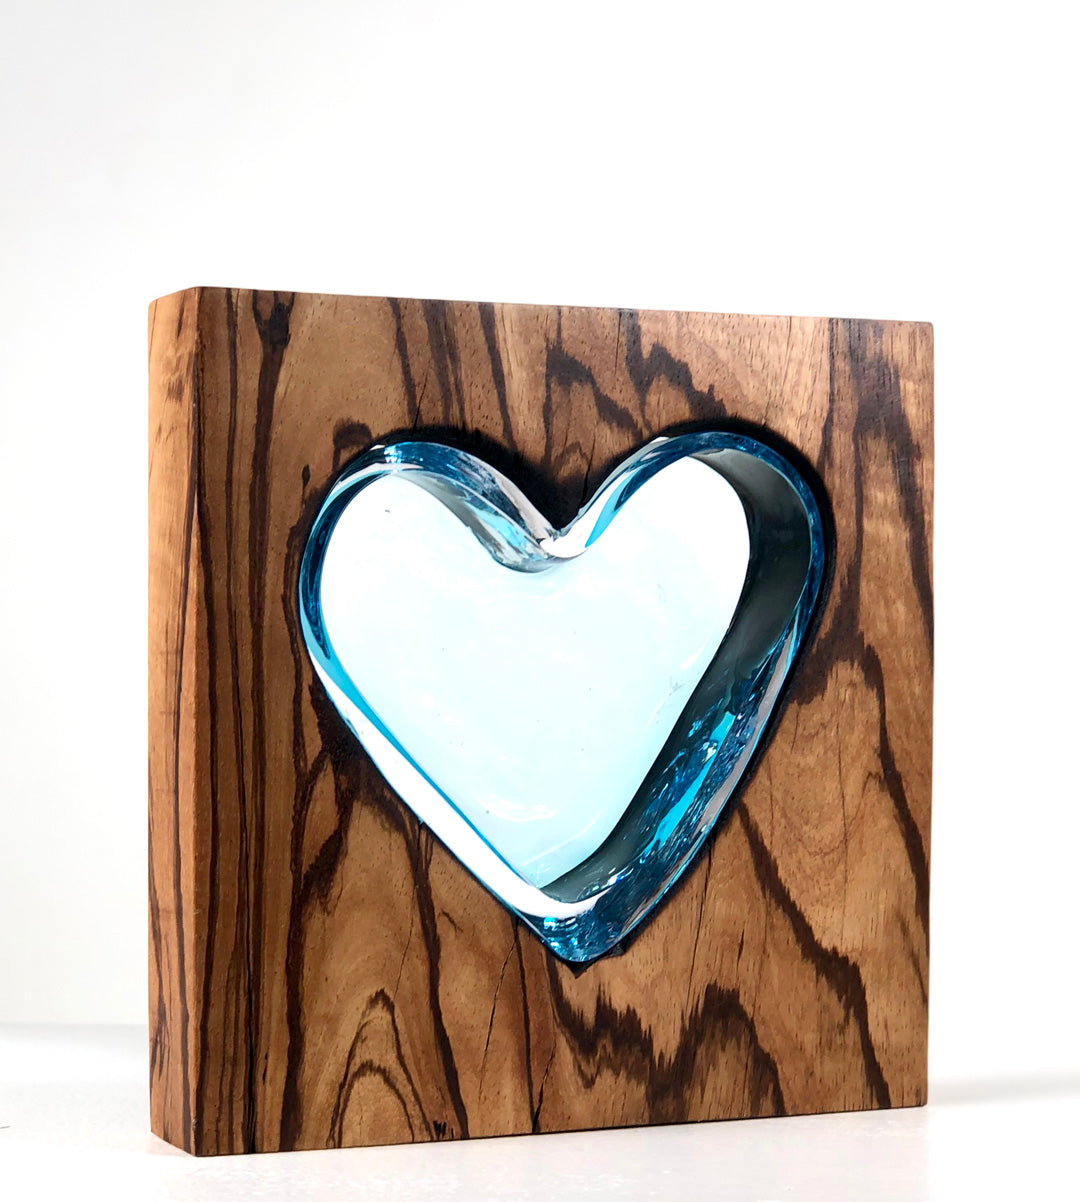 Zebra Wood Heart with Handblown Aqua Glass